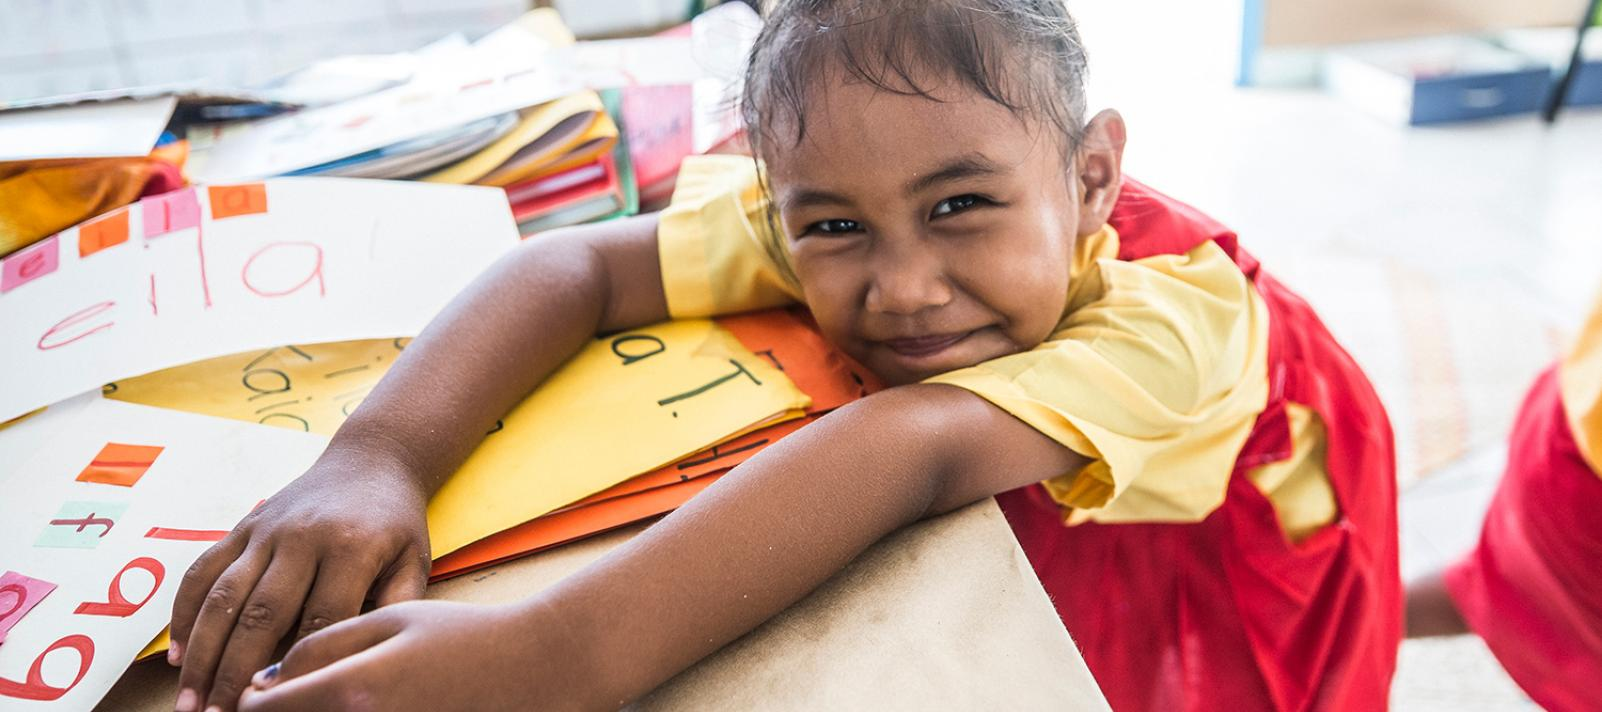 3-year-old Penina, a kindergarten Tialeniu School student posing for a photograph during class. Fakaofo Atoll, Tokelau.